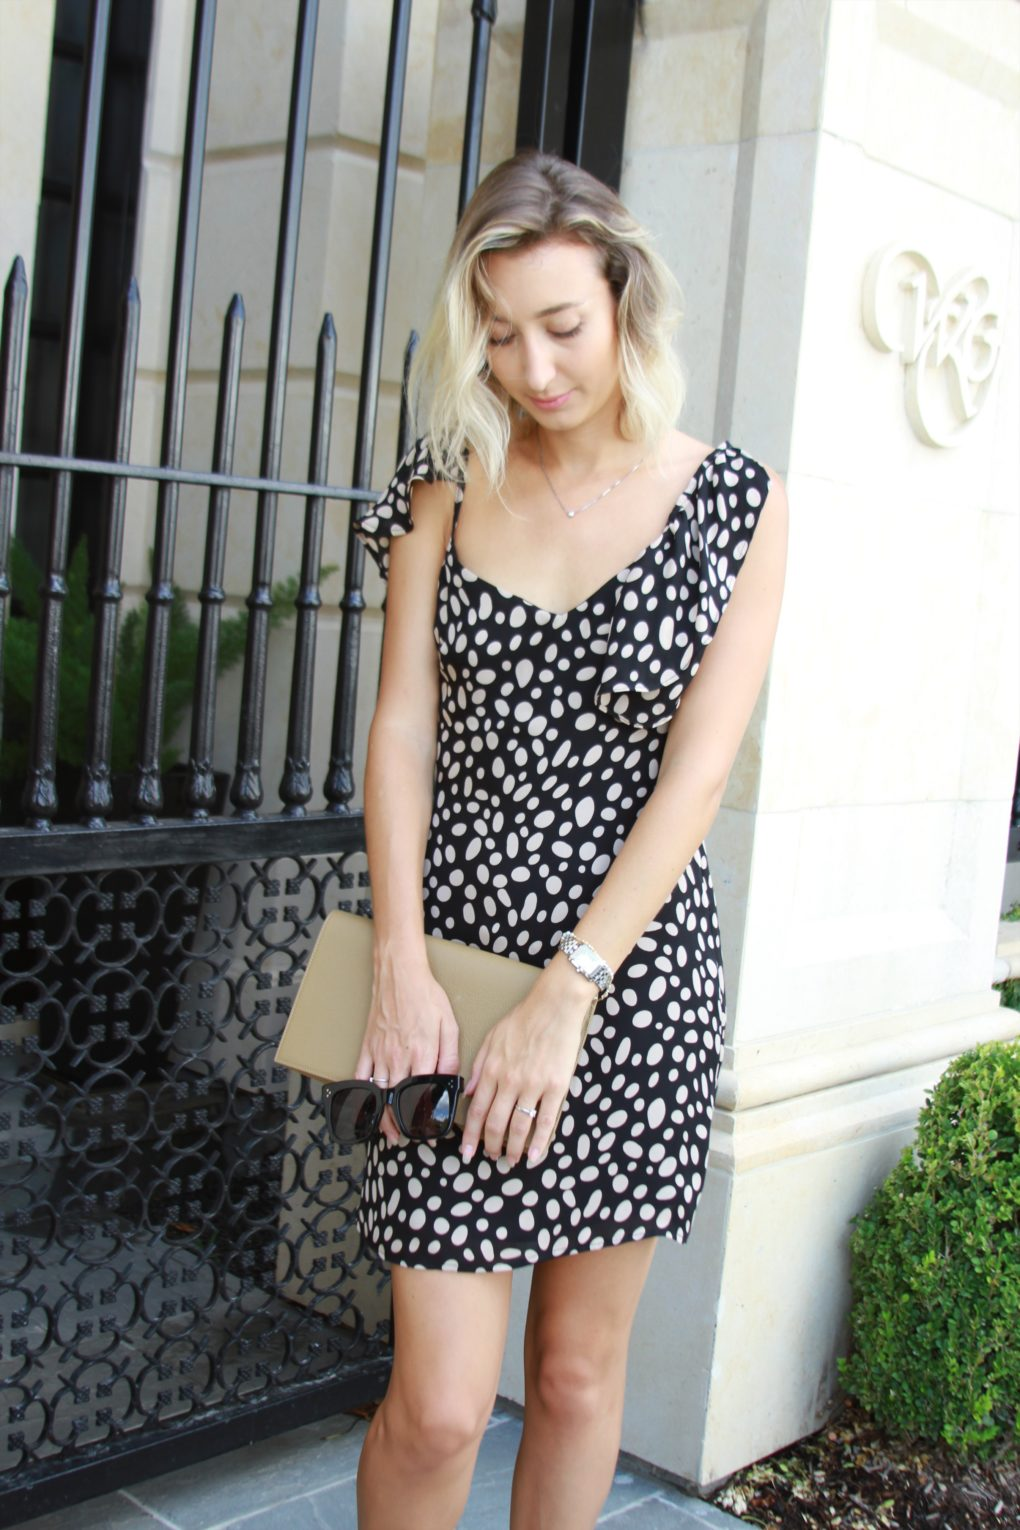 Stone Cold Fox polka dot dress